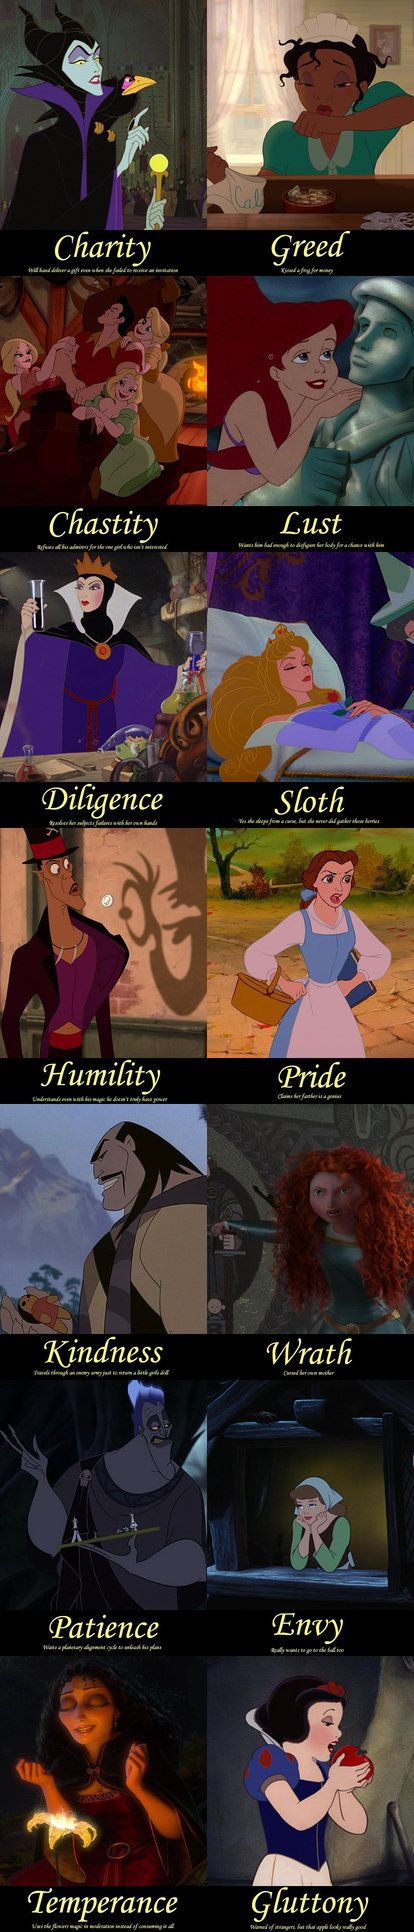 I've see Disney princess sins and virtues, and villain sins, so I decided to do villain virtues and my own idea of princess sins. (Note: characters and pictures belong to Disney)